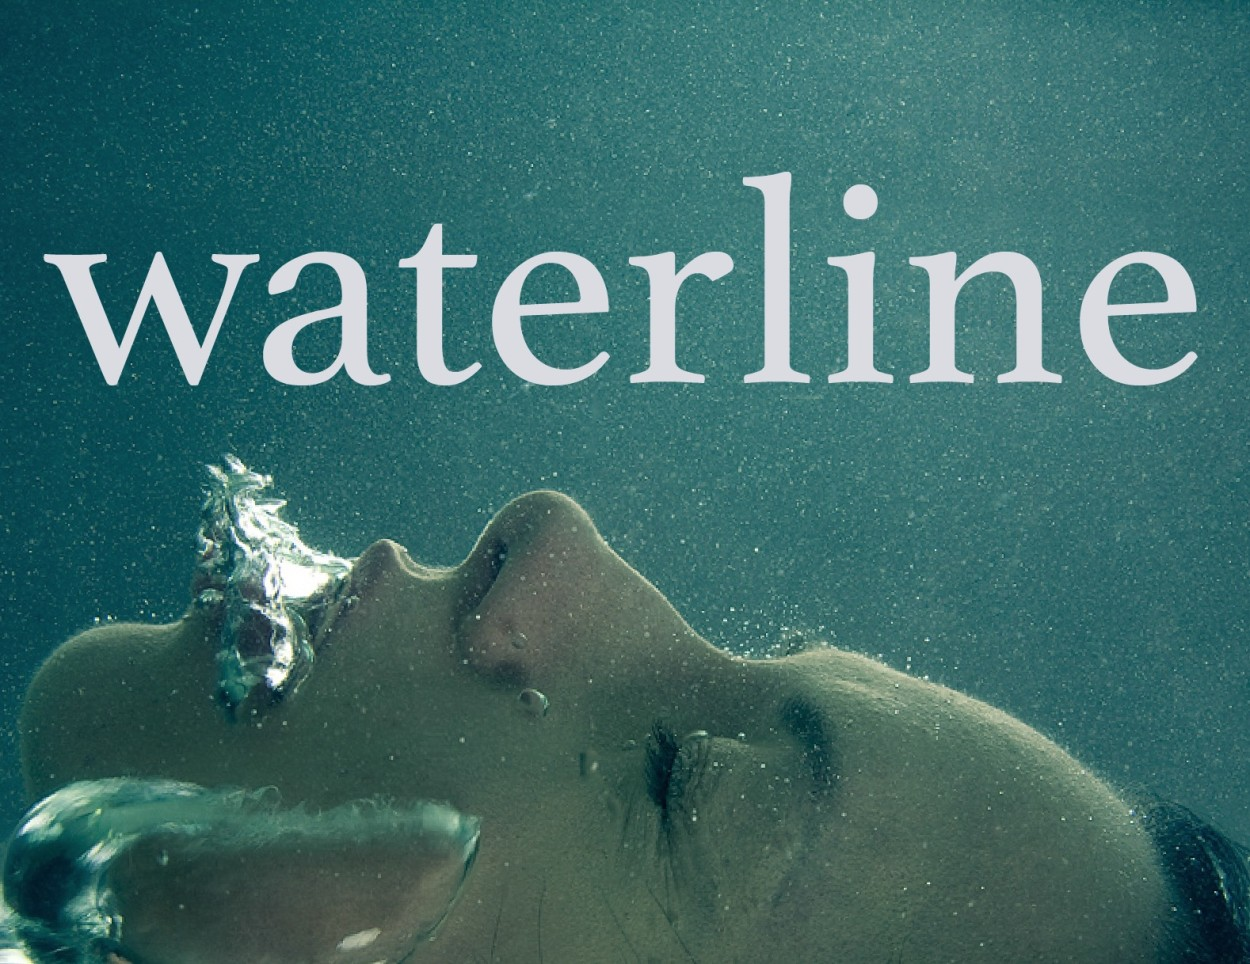 waterline-jpg.jpg